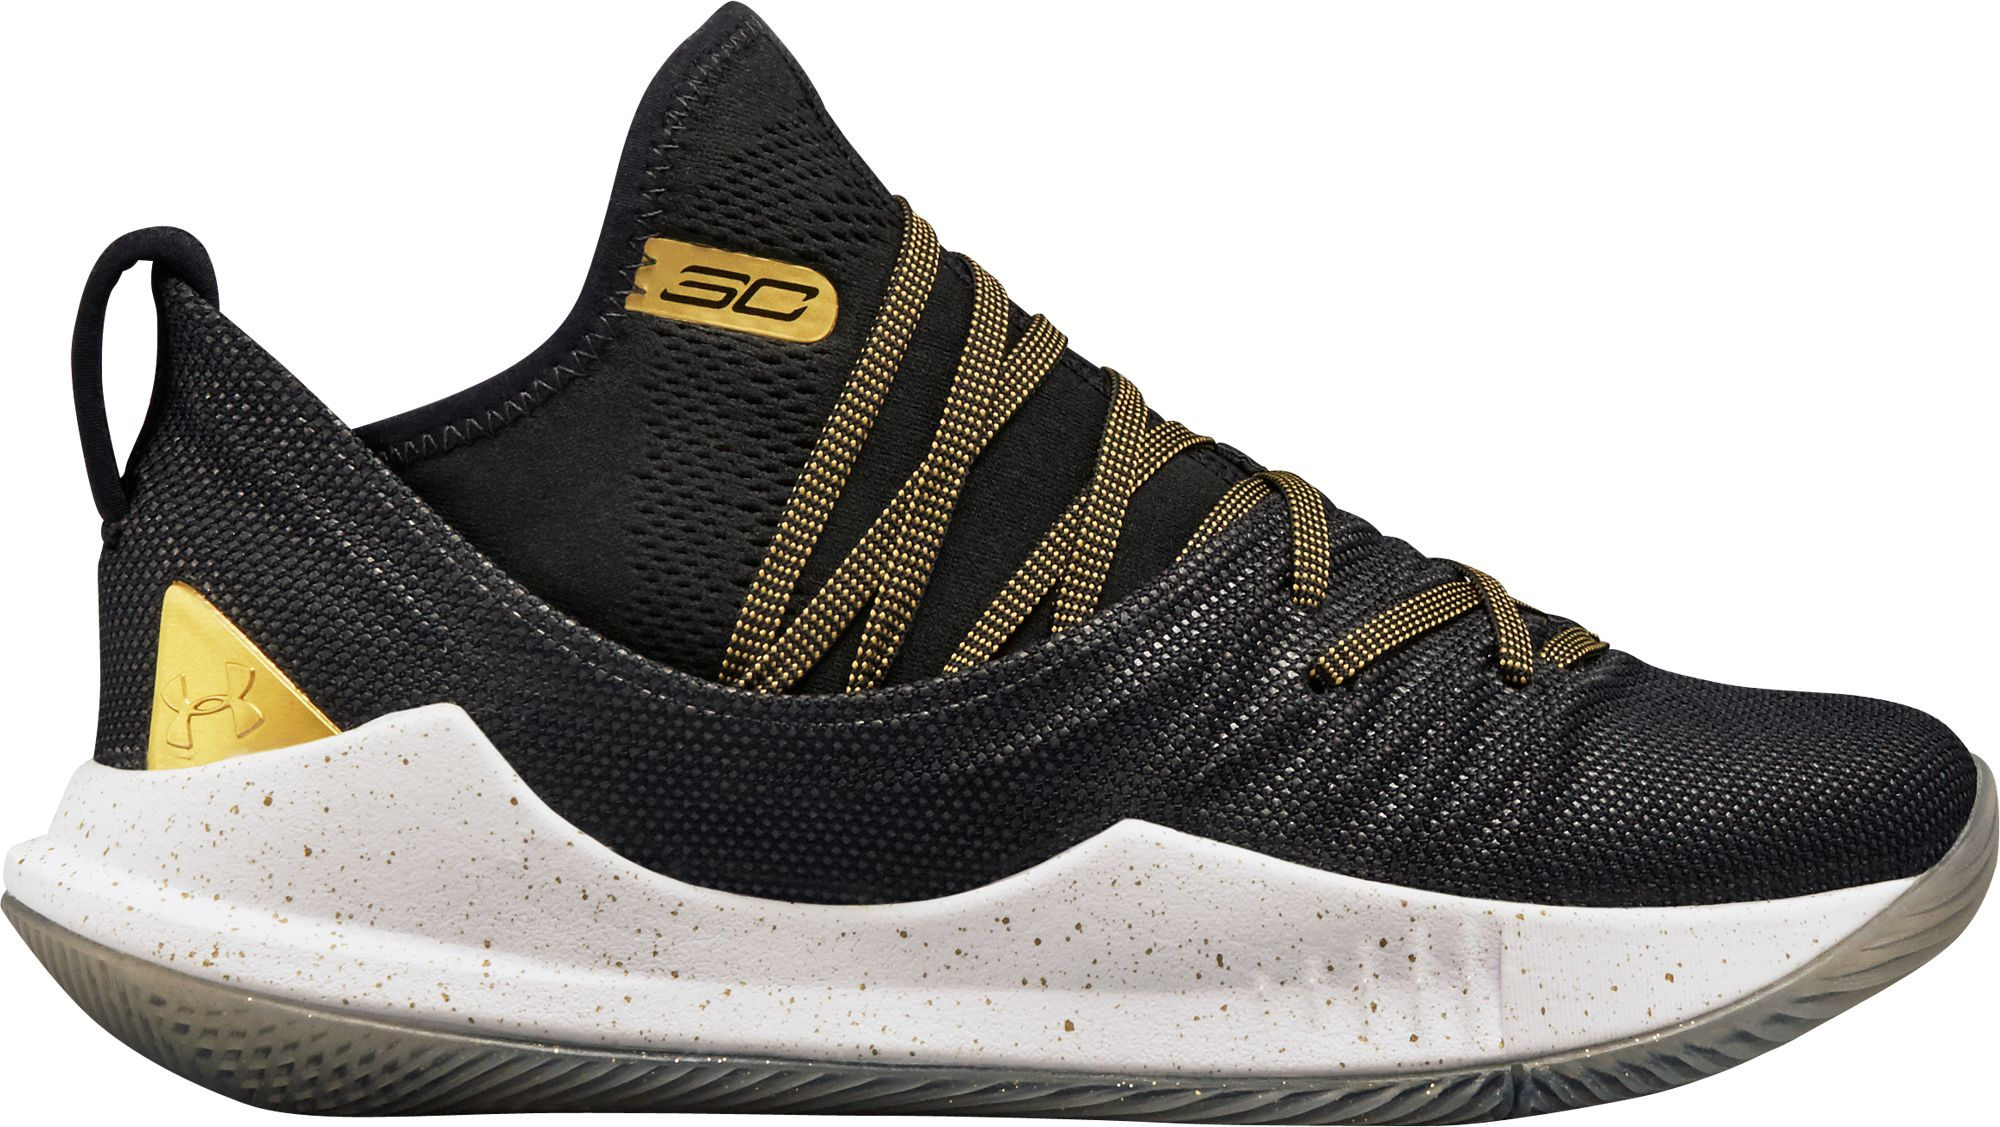 sports shoes d5767 dc9c2 Under Armour Kids  Grade School Curry 5 Basketball Shoes, Boy s, Size  4.5,  Black